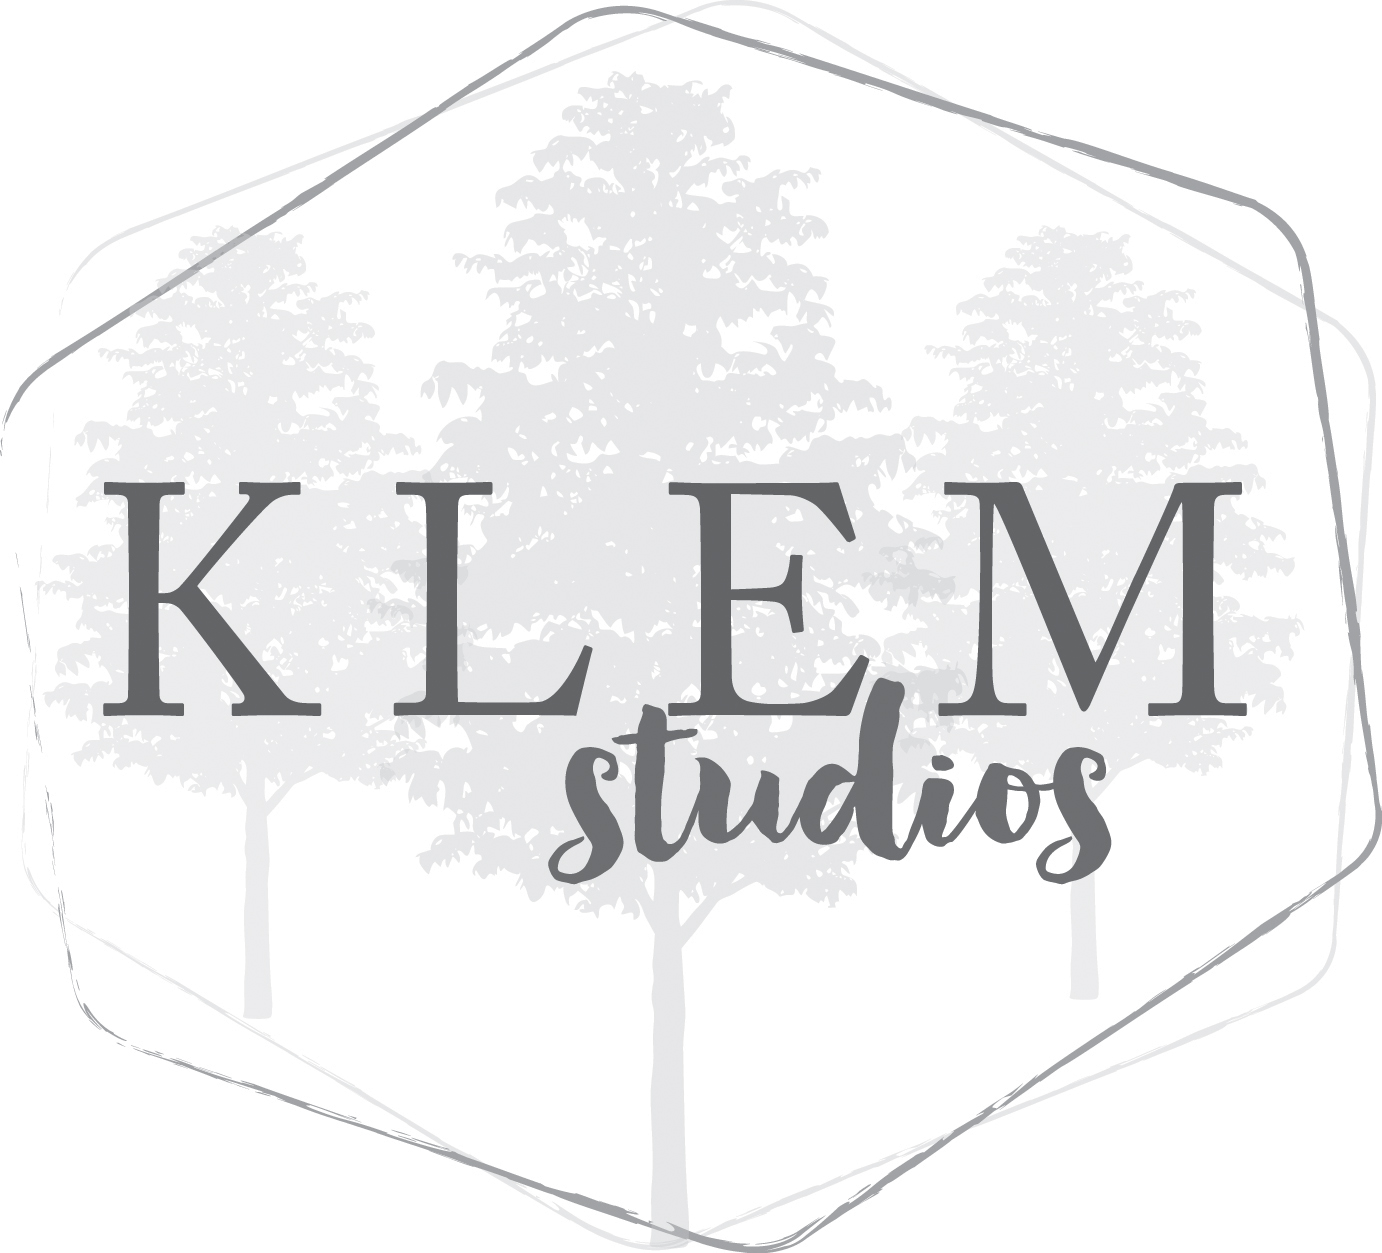 Associate Wedding Photographer for KLEM Studios: Formerly Hove Photography LLC